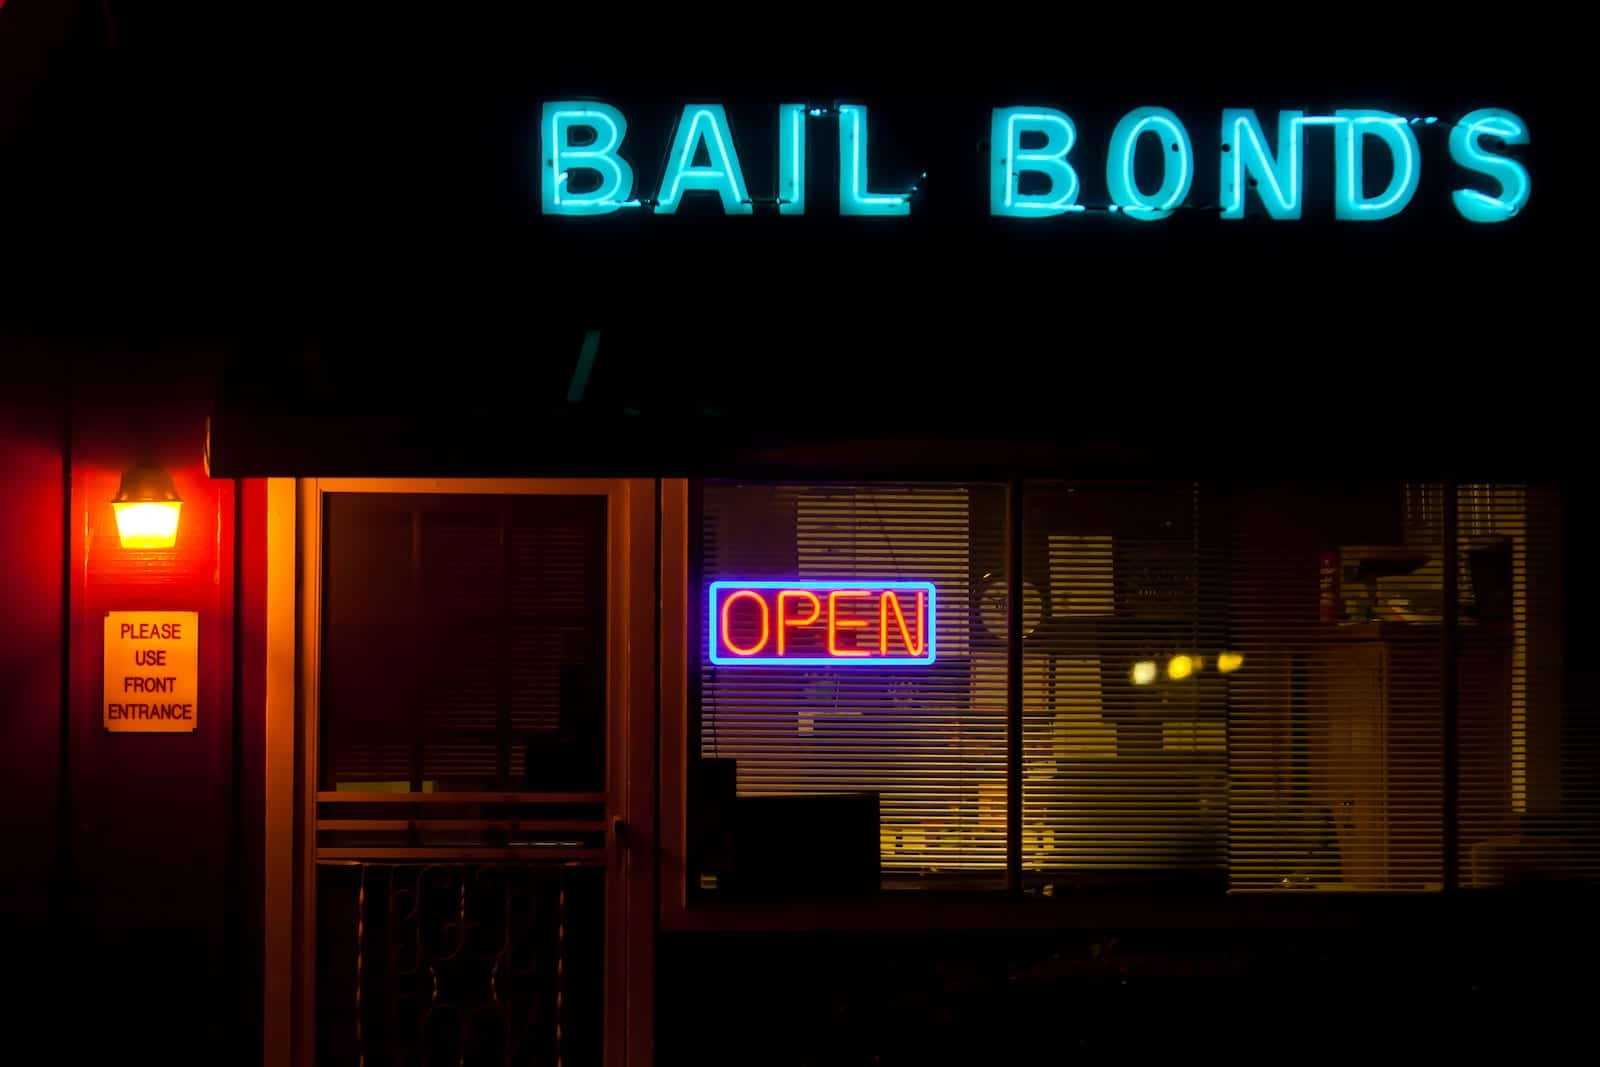 Bail Bonds Open Front Entrance Exterior